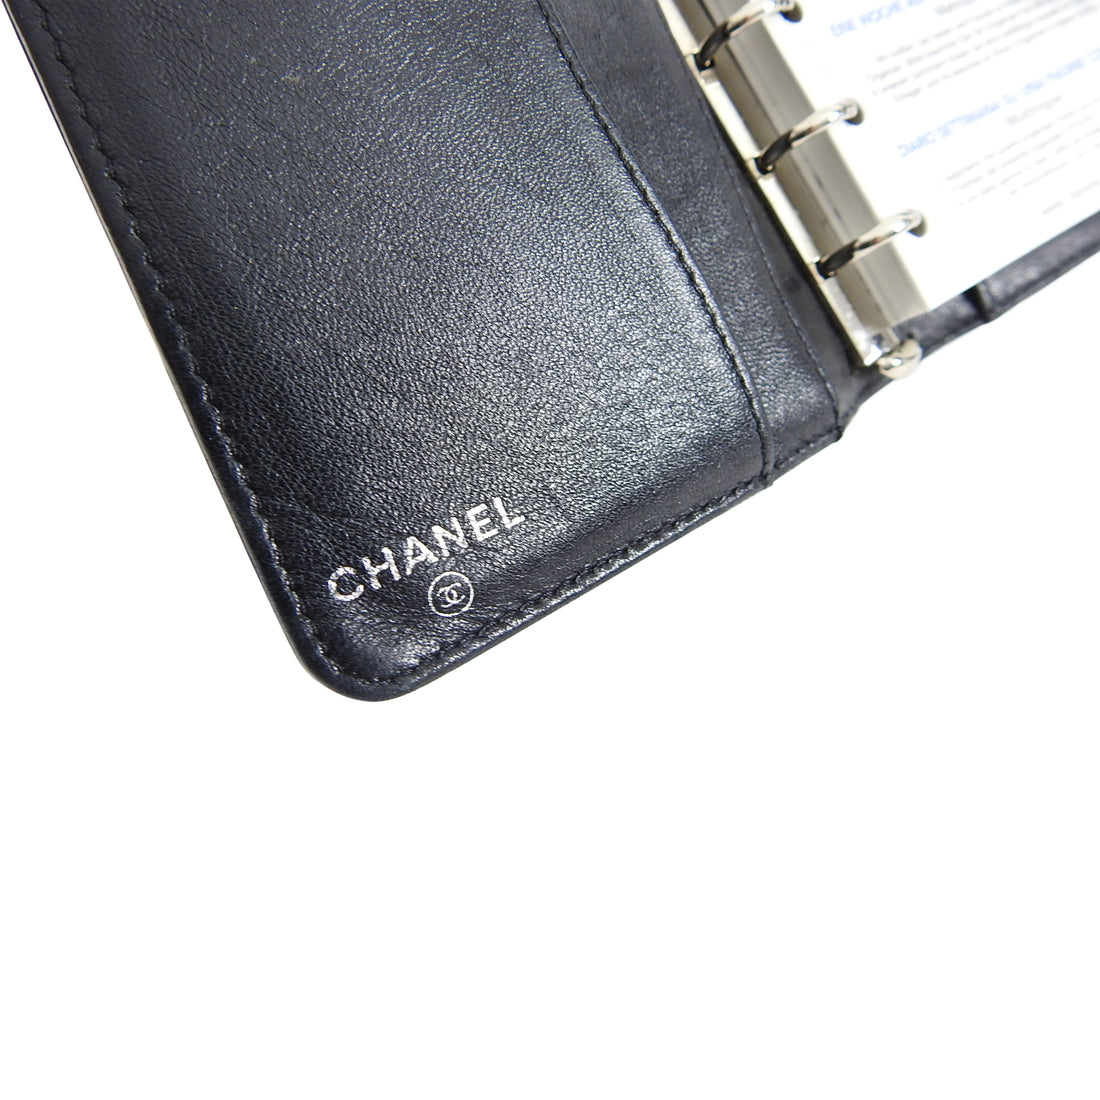 Chanel Vintage 2003 Black Leather Small Agenda Organizer